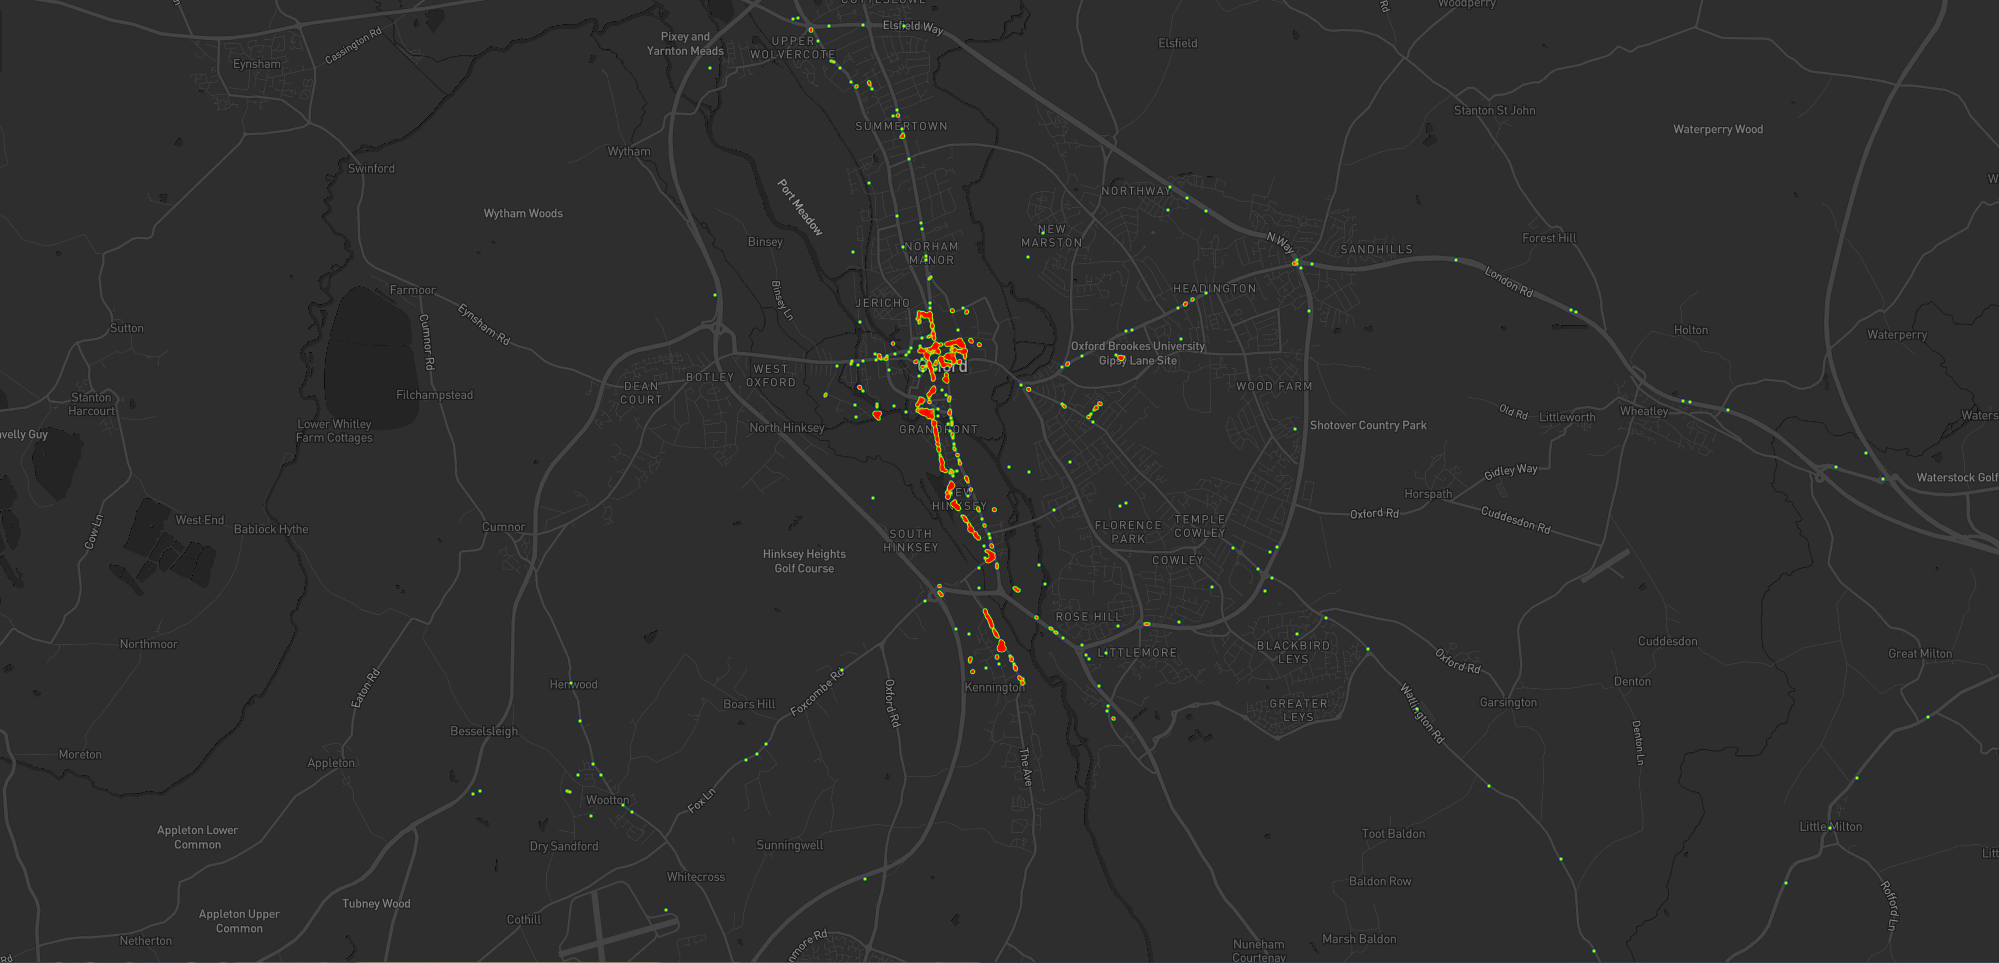 Heatmap showing Dan's movements around Oxford during the period he lived in Kennington. Again, it's dominated by time at home, in the city centre, and commuting between the two.